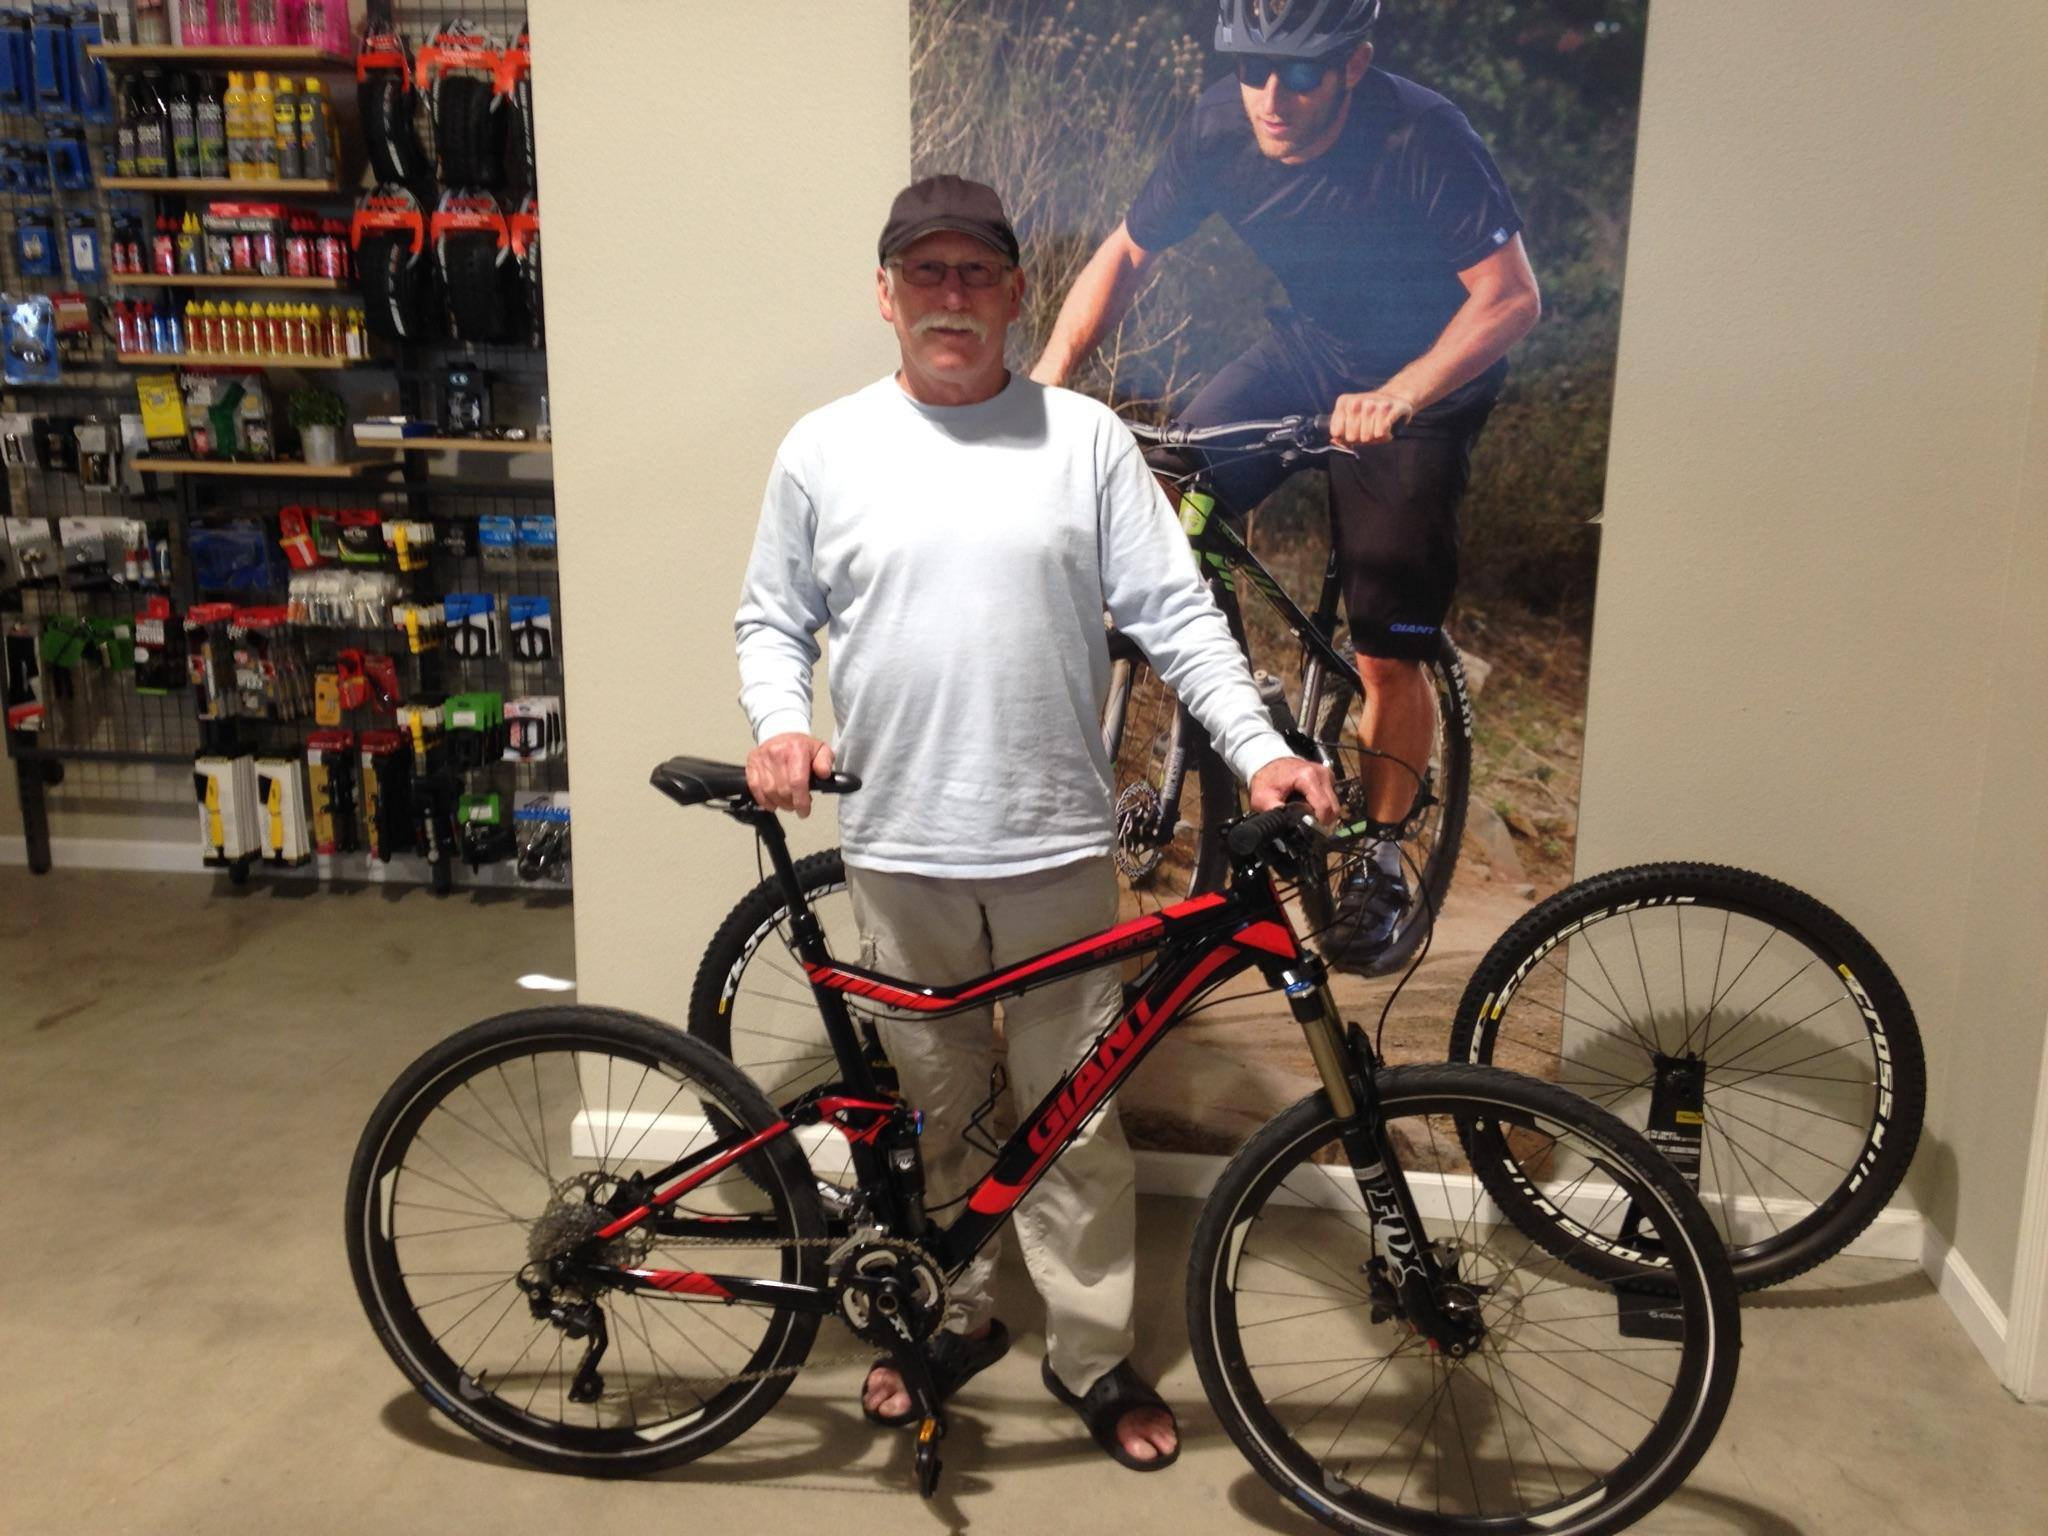 David with his 2015 Giant Stance 0